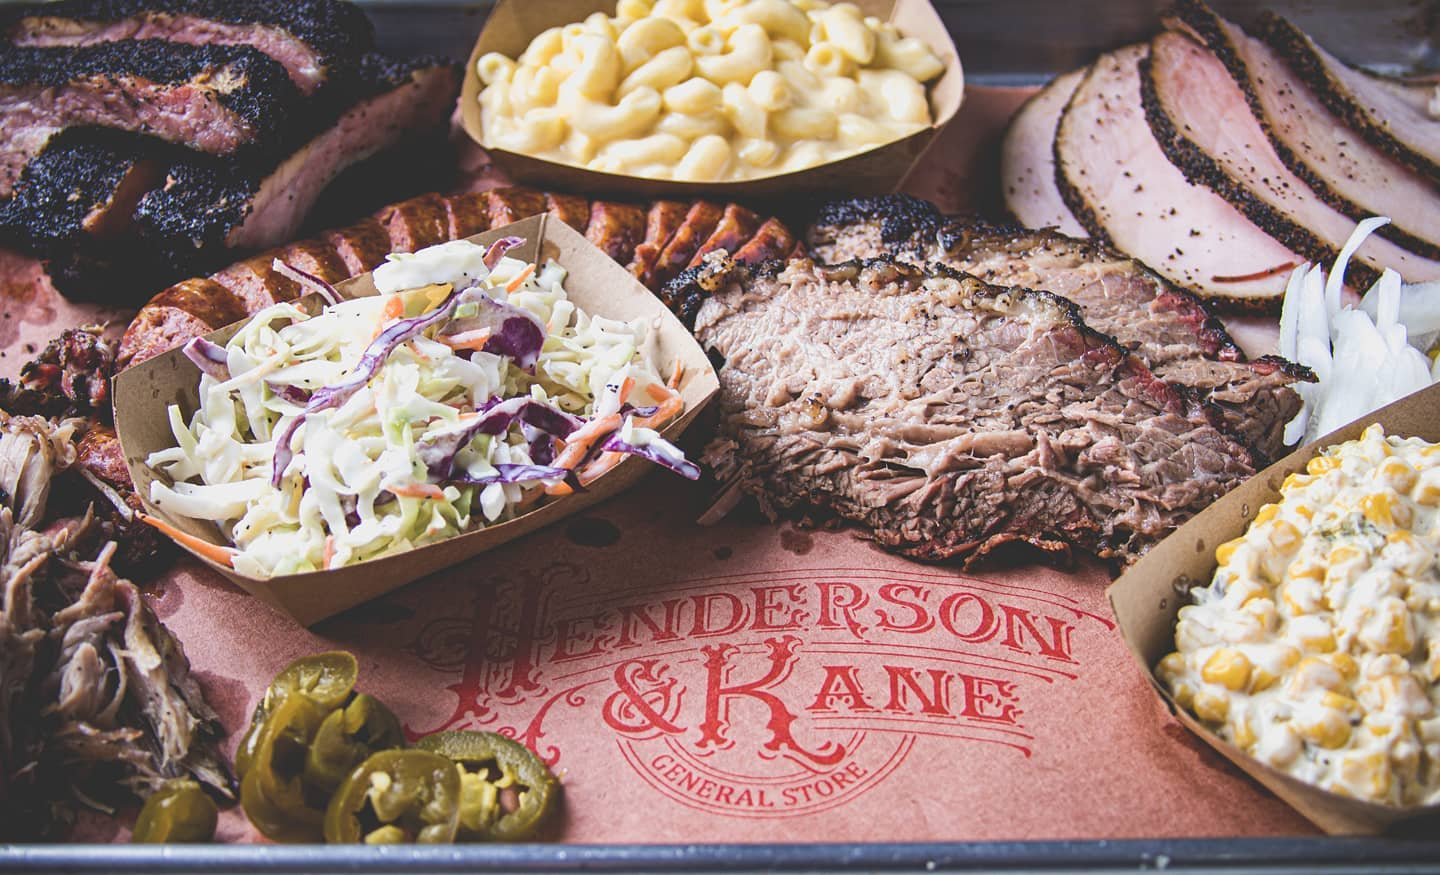 a spread of barbecue including sliced brisket, cole slaw and macaroni and cheese